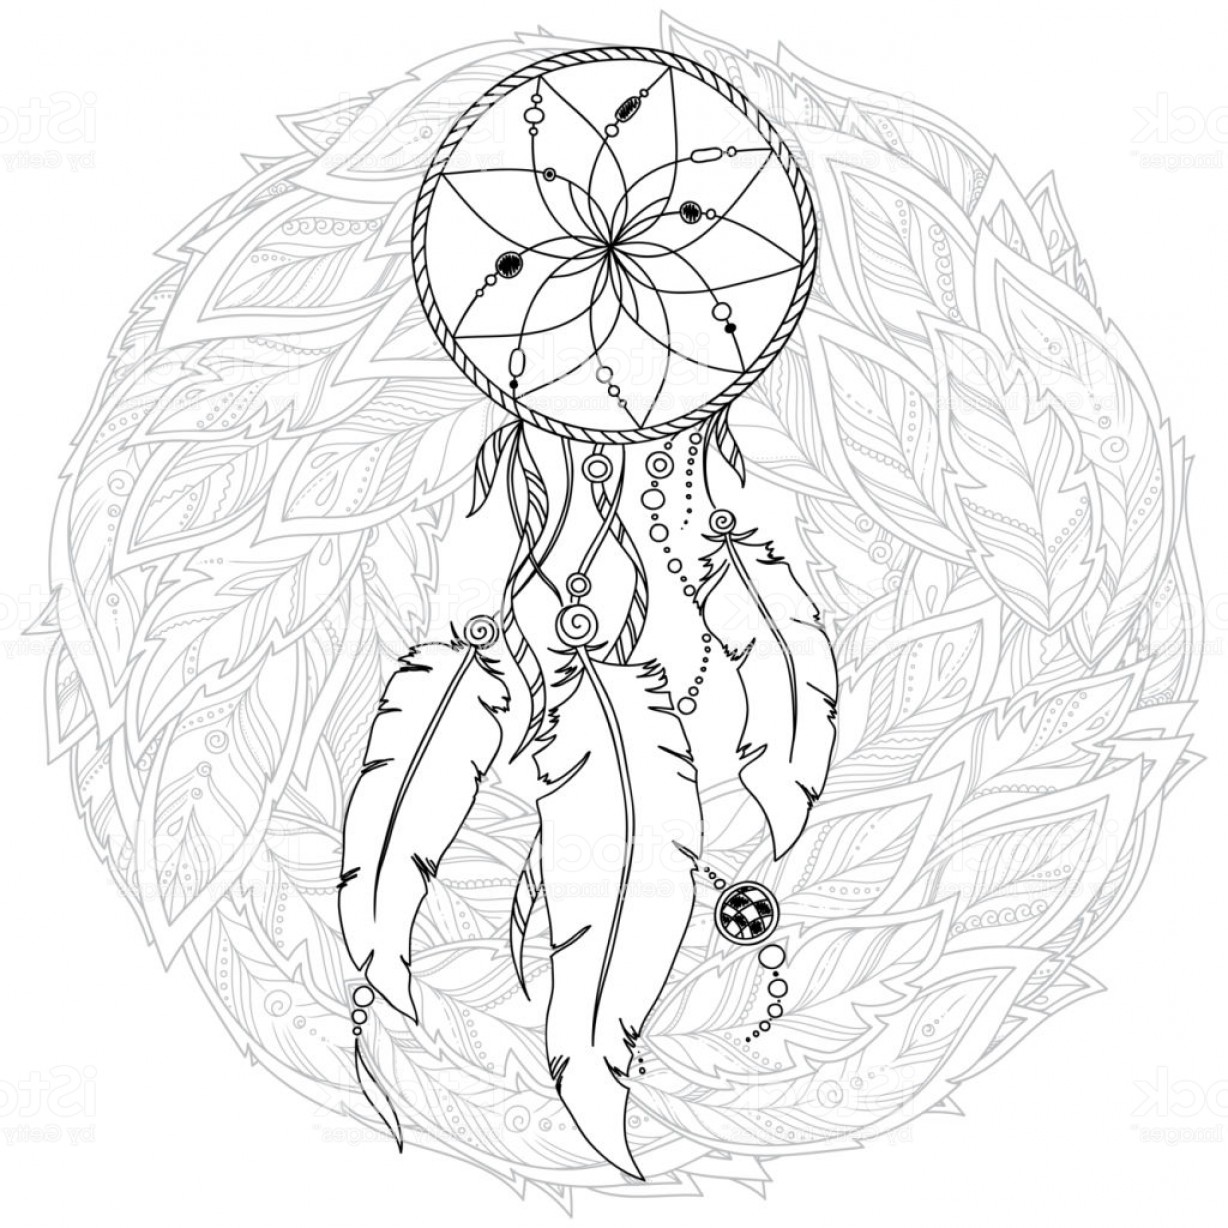 Dreamcatcher Tattoo Vector: Hand Drawn Monochrome Dreamcatcher Isolated On White Background Gm